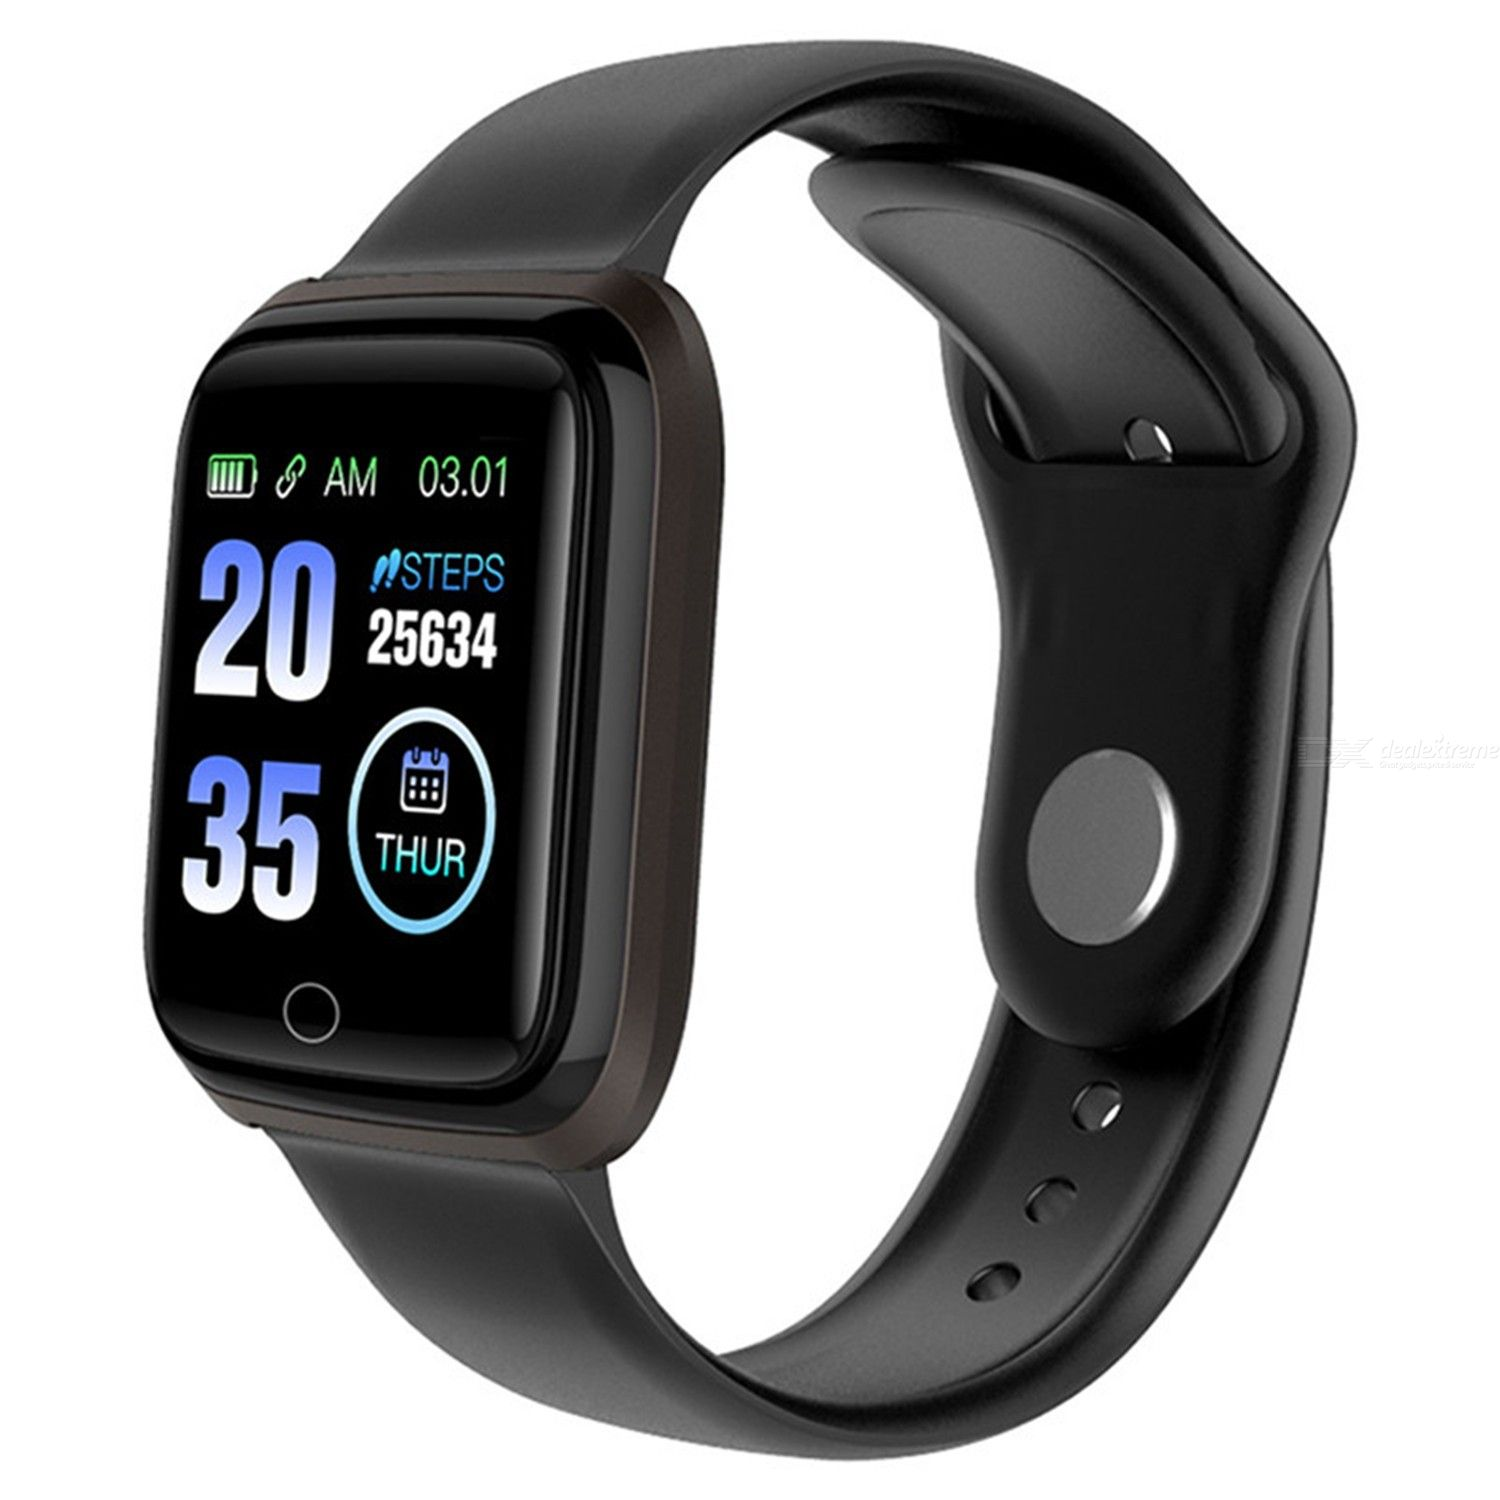 M6 Smart Watch Gps Positioning Waterproof Heart Rate Blood Pressure Multi Mode Watch Can Take Pictures, Exercise Meter Step